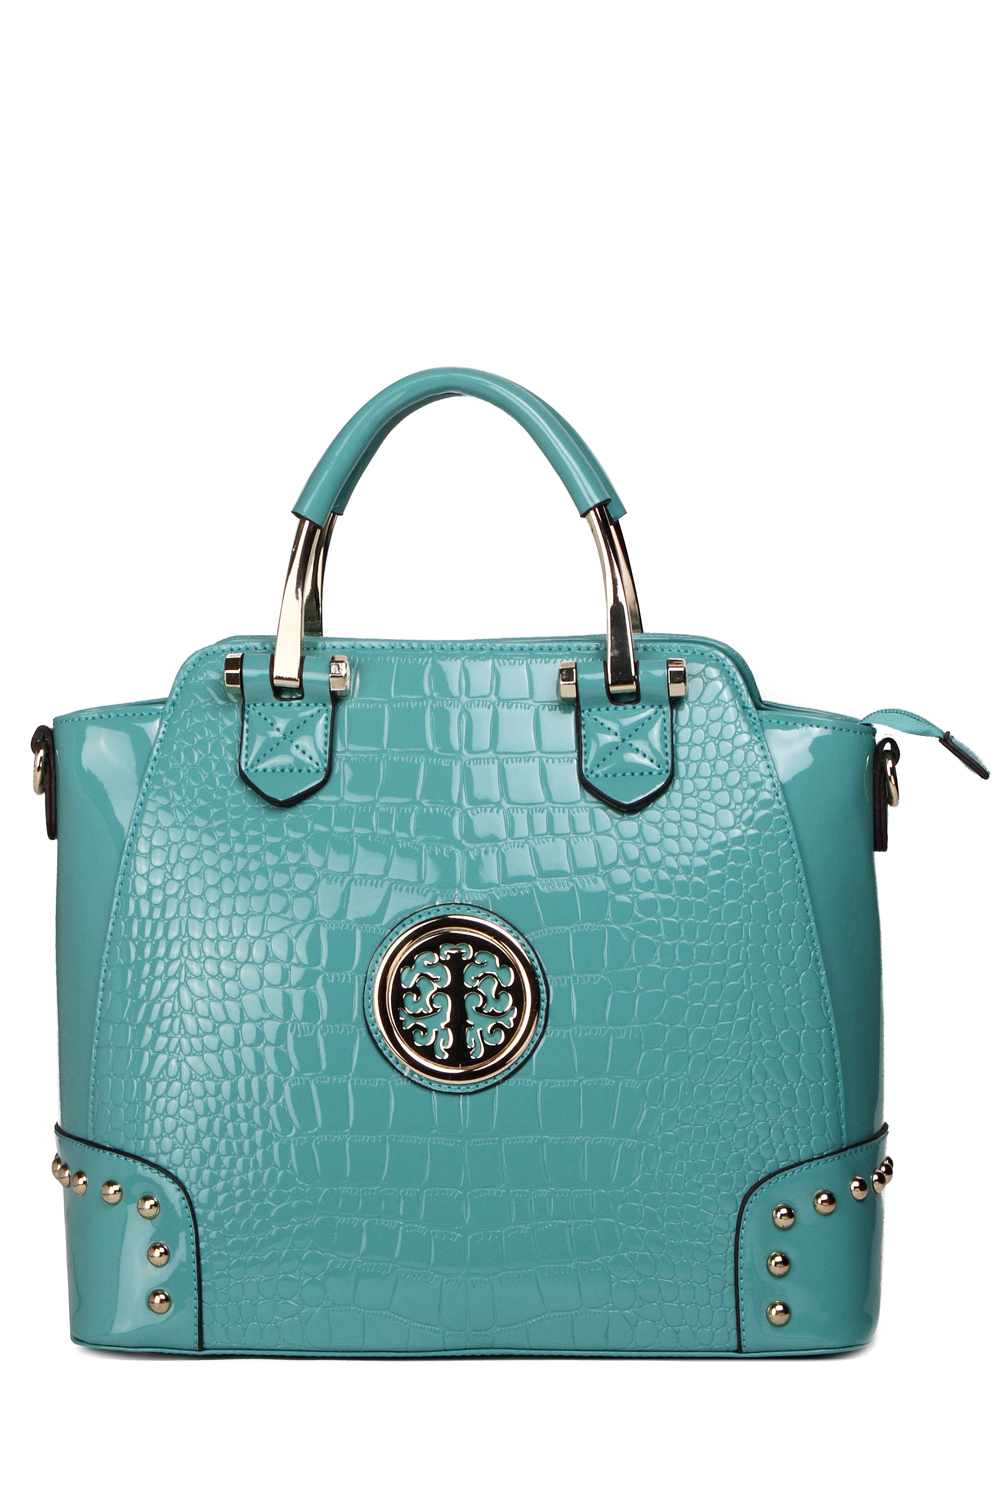 Handbags: Free Shipping on orders over $45! Find totes, satchels, and more from fon-betgame.cf Your Online Clothing & Shoes Store! Get 5% in rewards with Club O! Find totes, satchels, and more from fon-betgame.cf Your Online Clothing & Shoes Store!